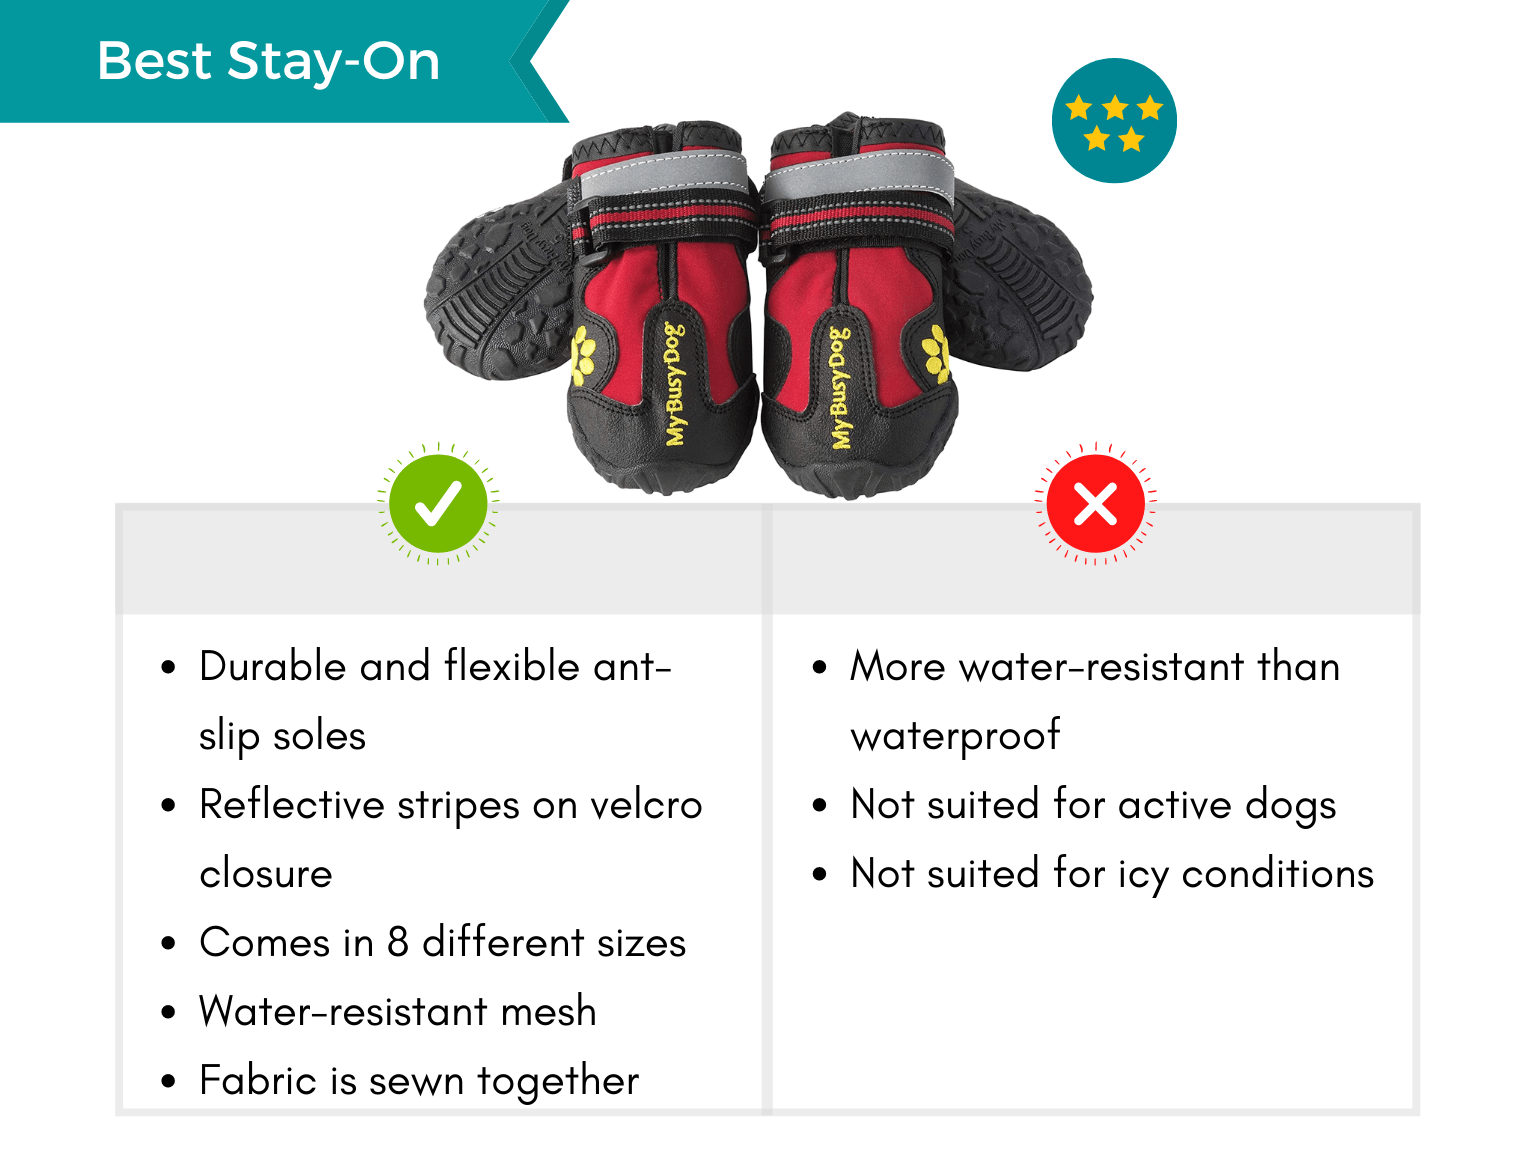 Infographic displaying pros and cons of the best stay-on waterproof dog boots.